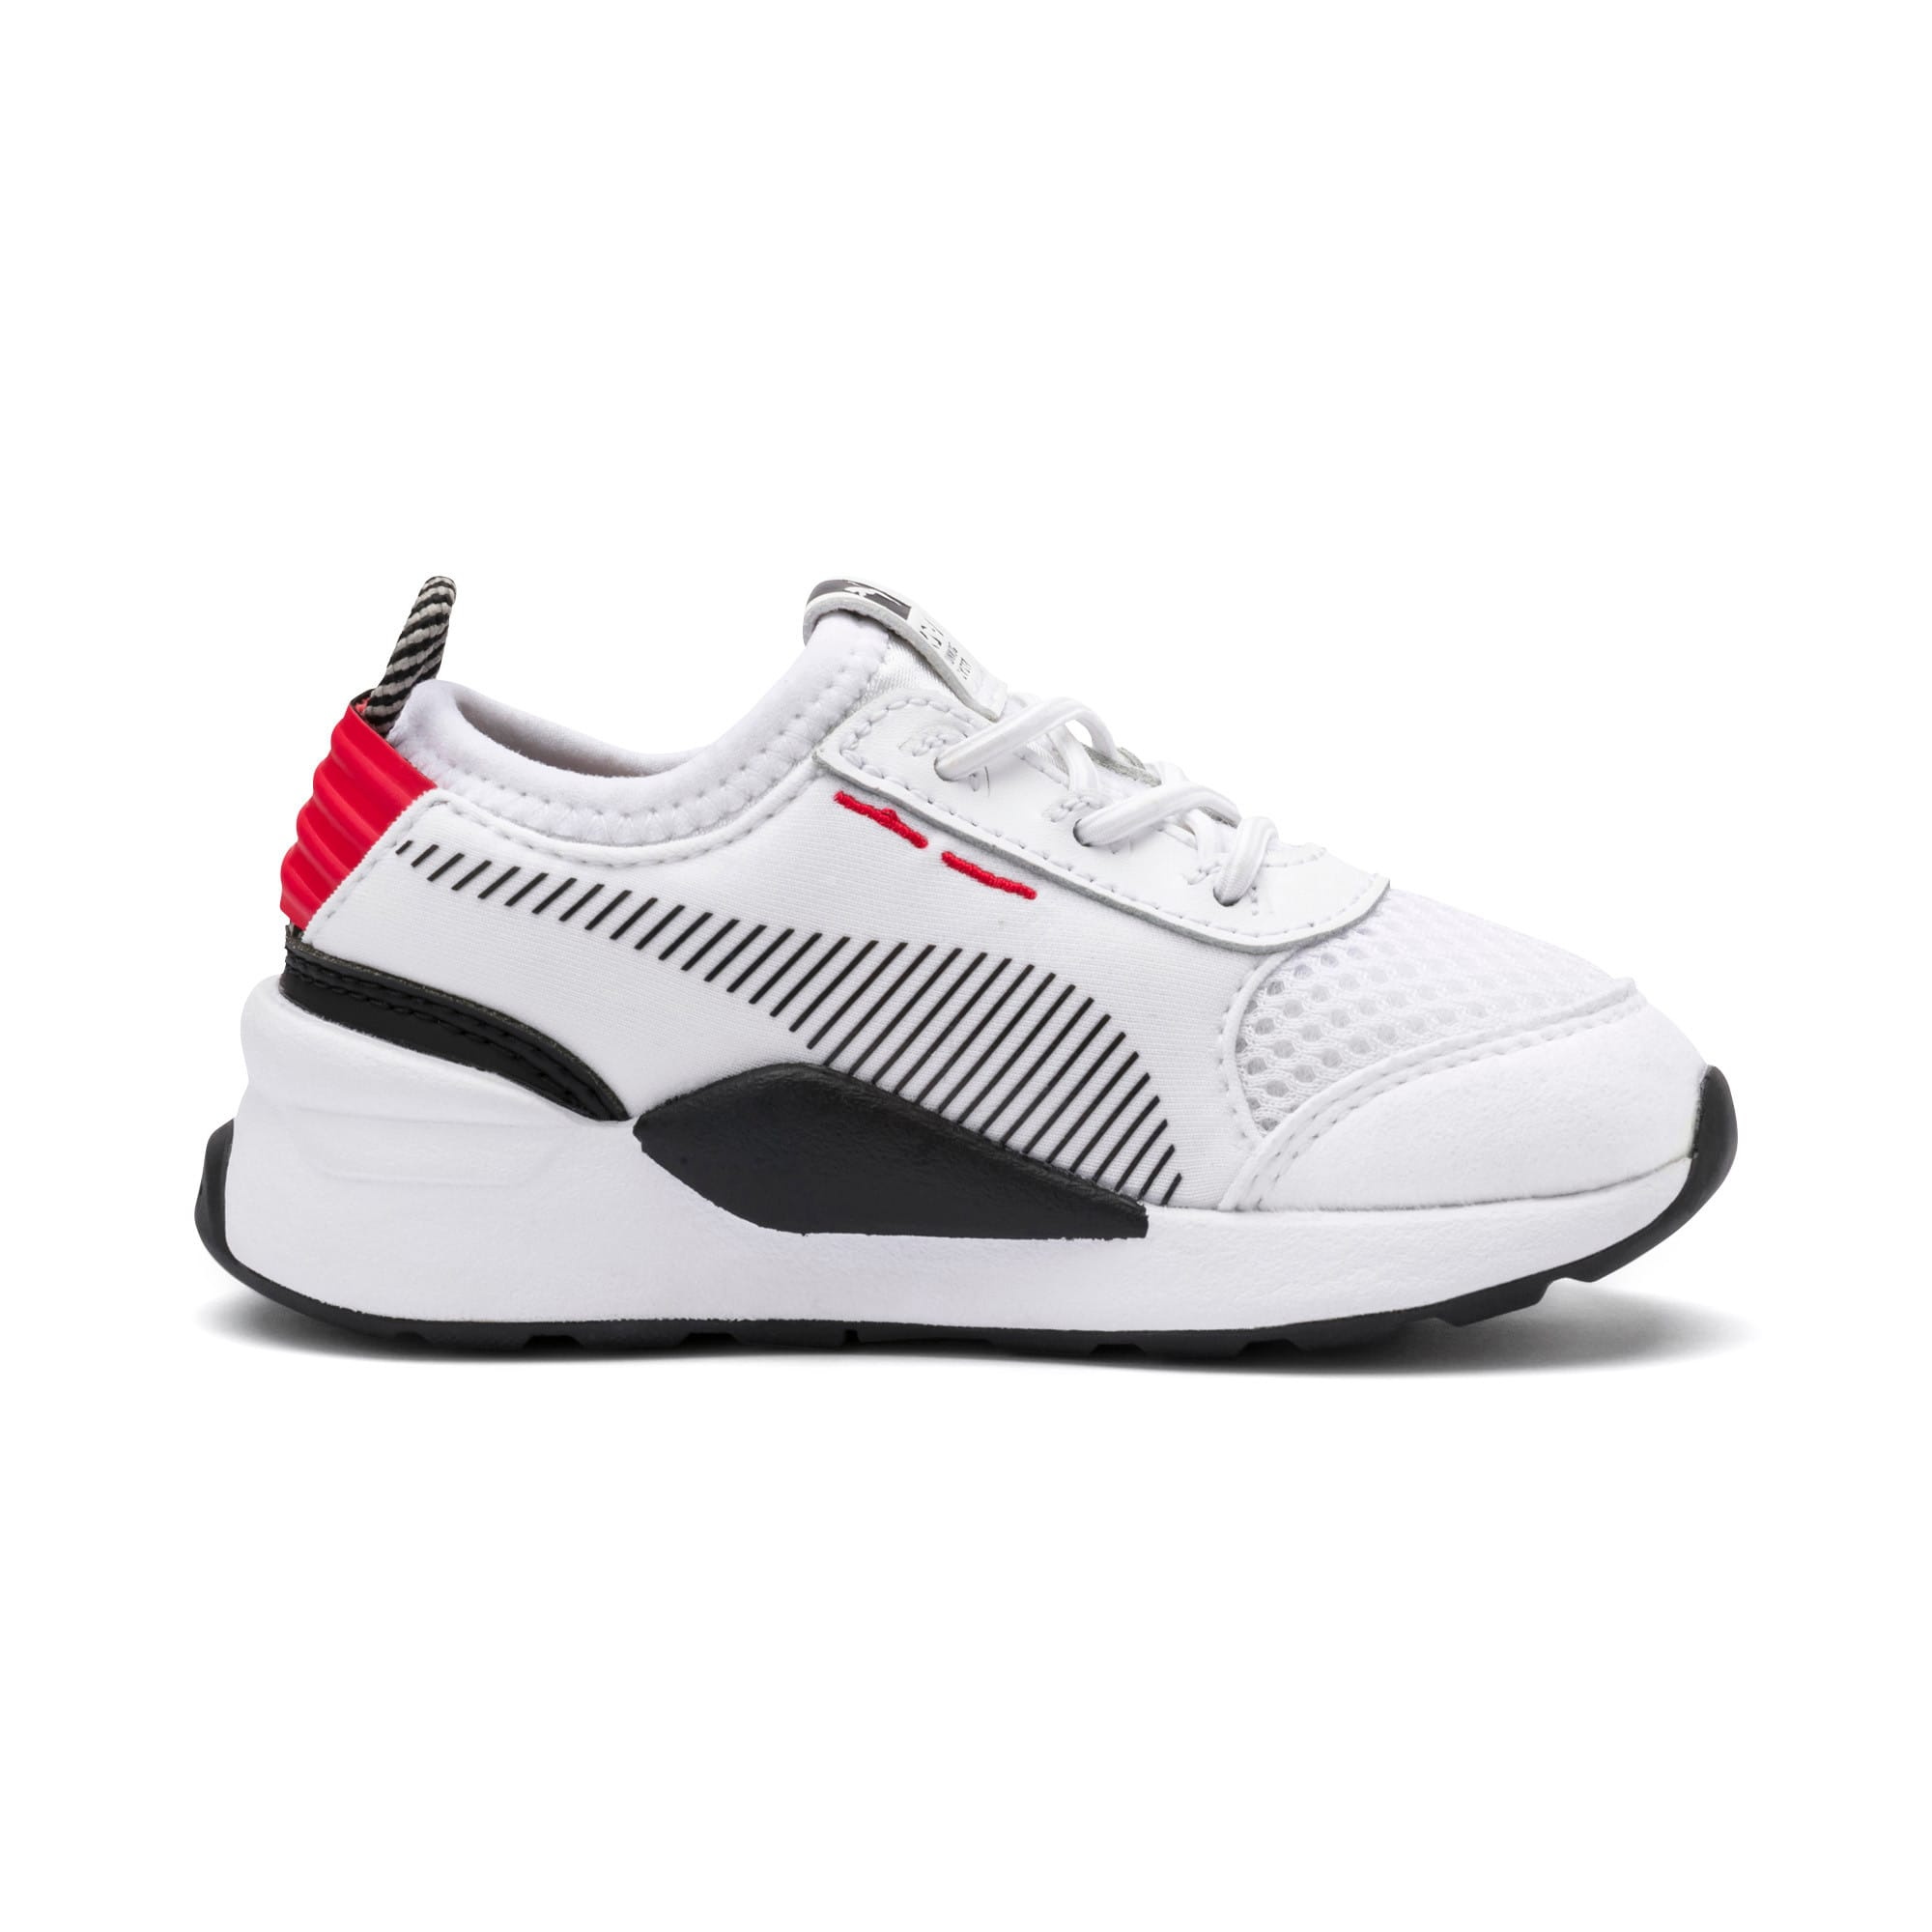 Thumbnail 5 of RS-0 Winter Inj Toys INF Shoes, Puma White-High Risk Red, medium